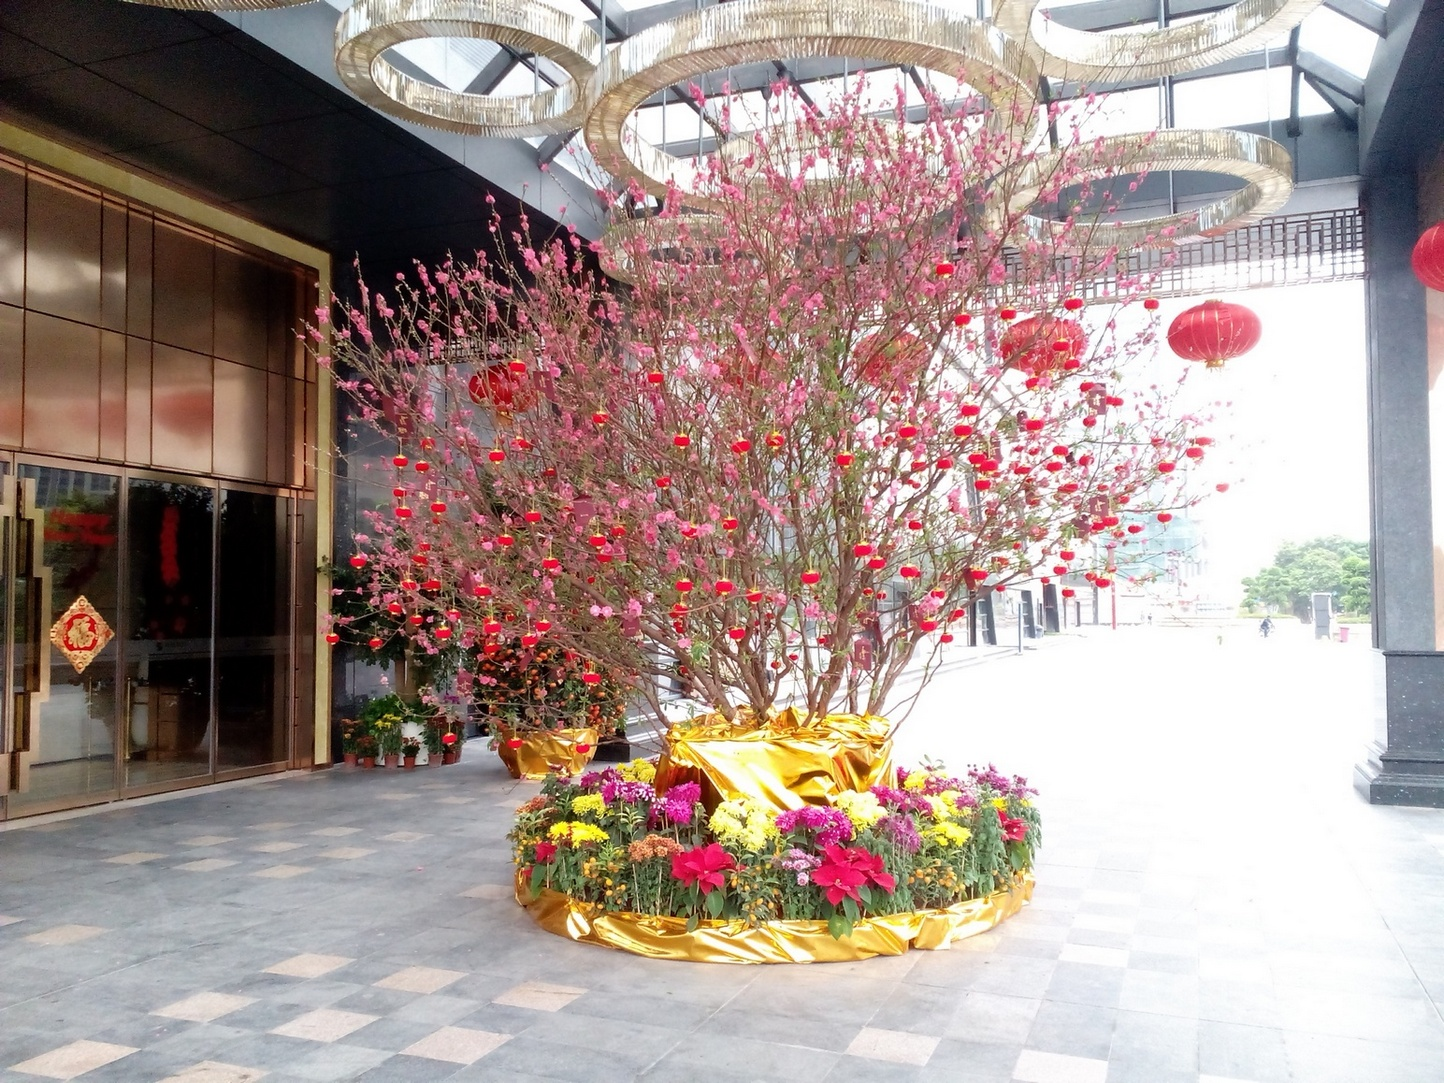 Guangzhou, The City of Flowers